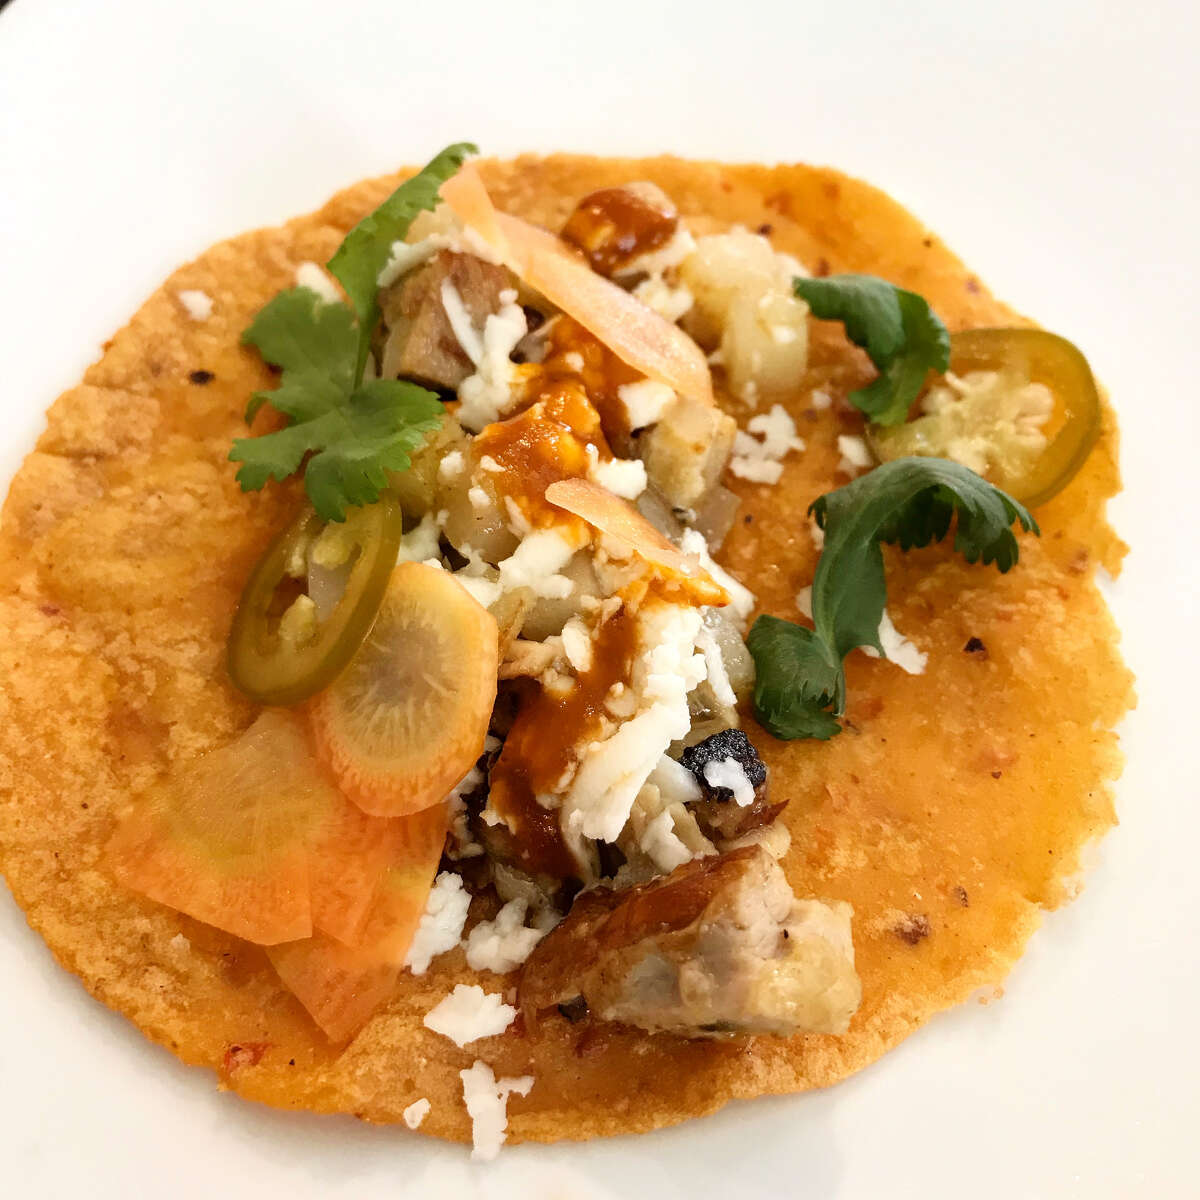 Crispy pork belly, poatoes and carrots on a chile de arbol corn tortilla from the taco pop-up dinners hosted by Cesar Cano.